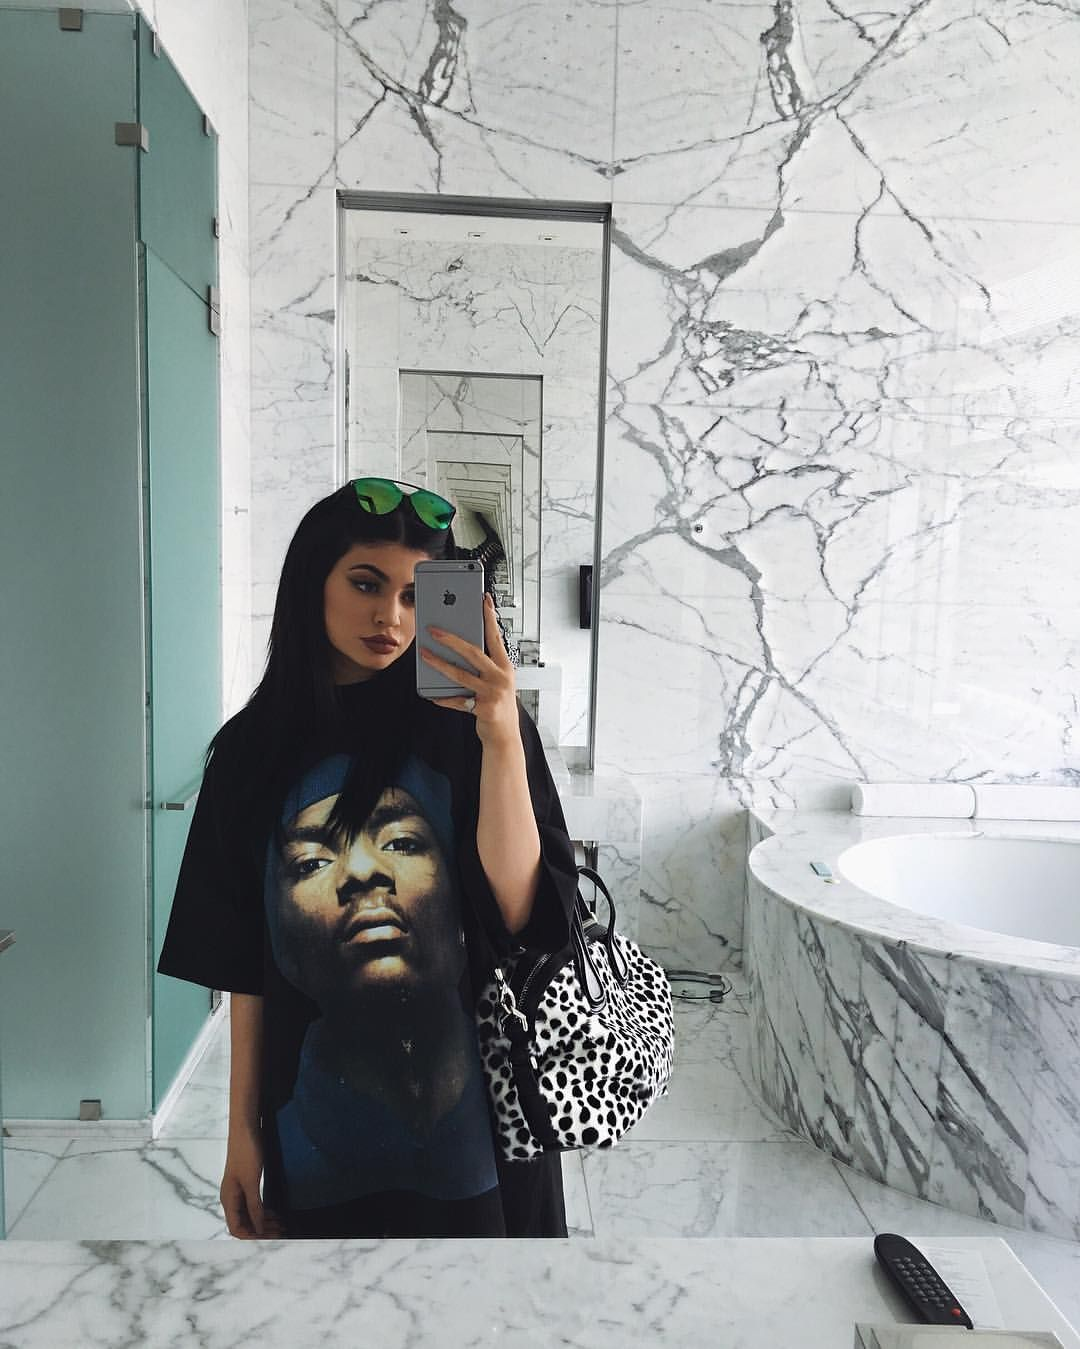 cc04cc10ad9 See this Instagram photo by  kyliejenner • 180.4k likes